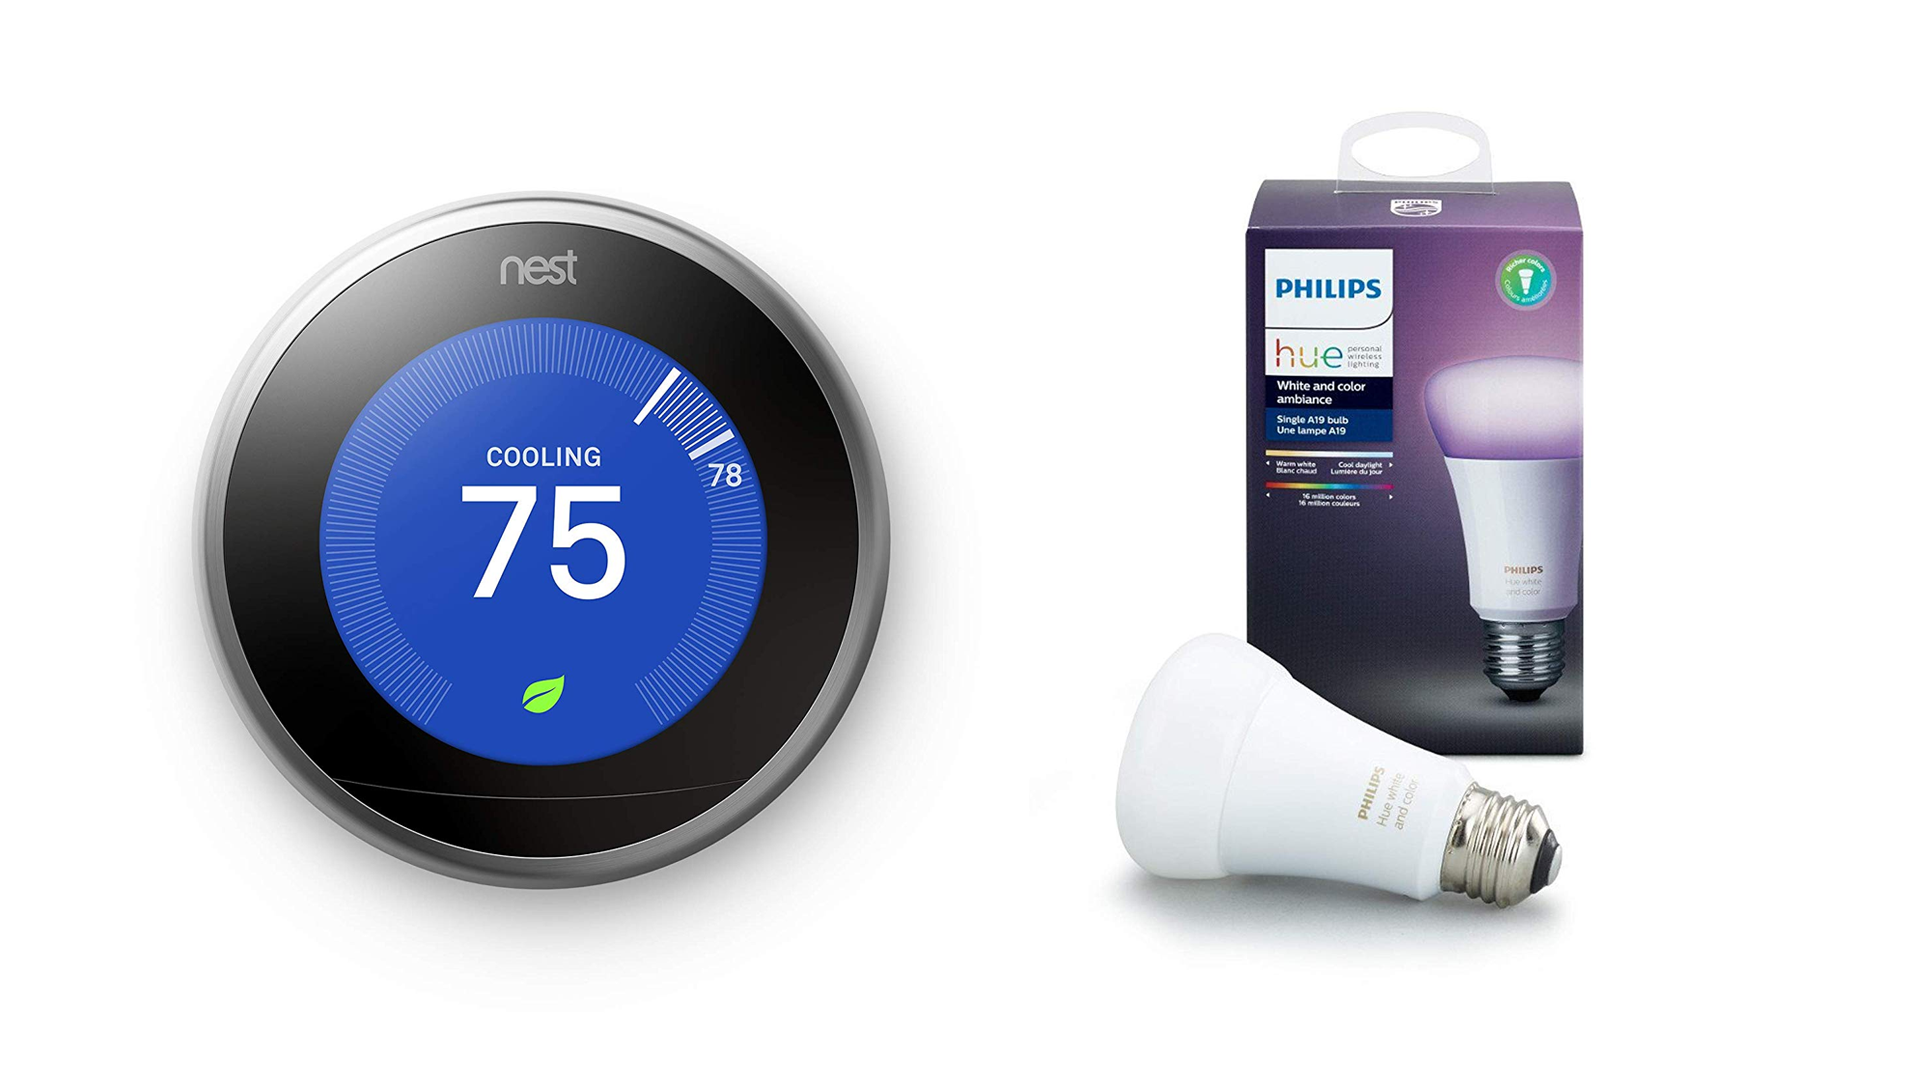 The Nest smart thermostat and the Philips Hue white bulb